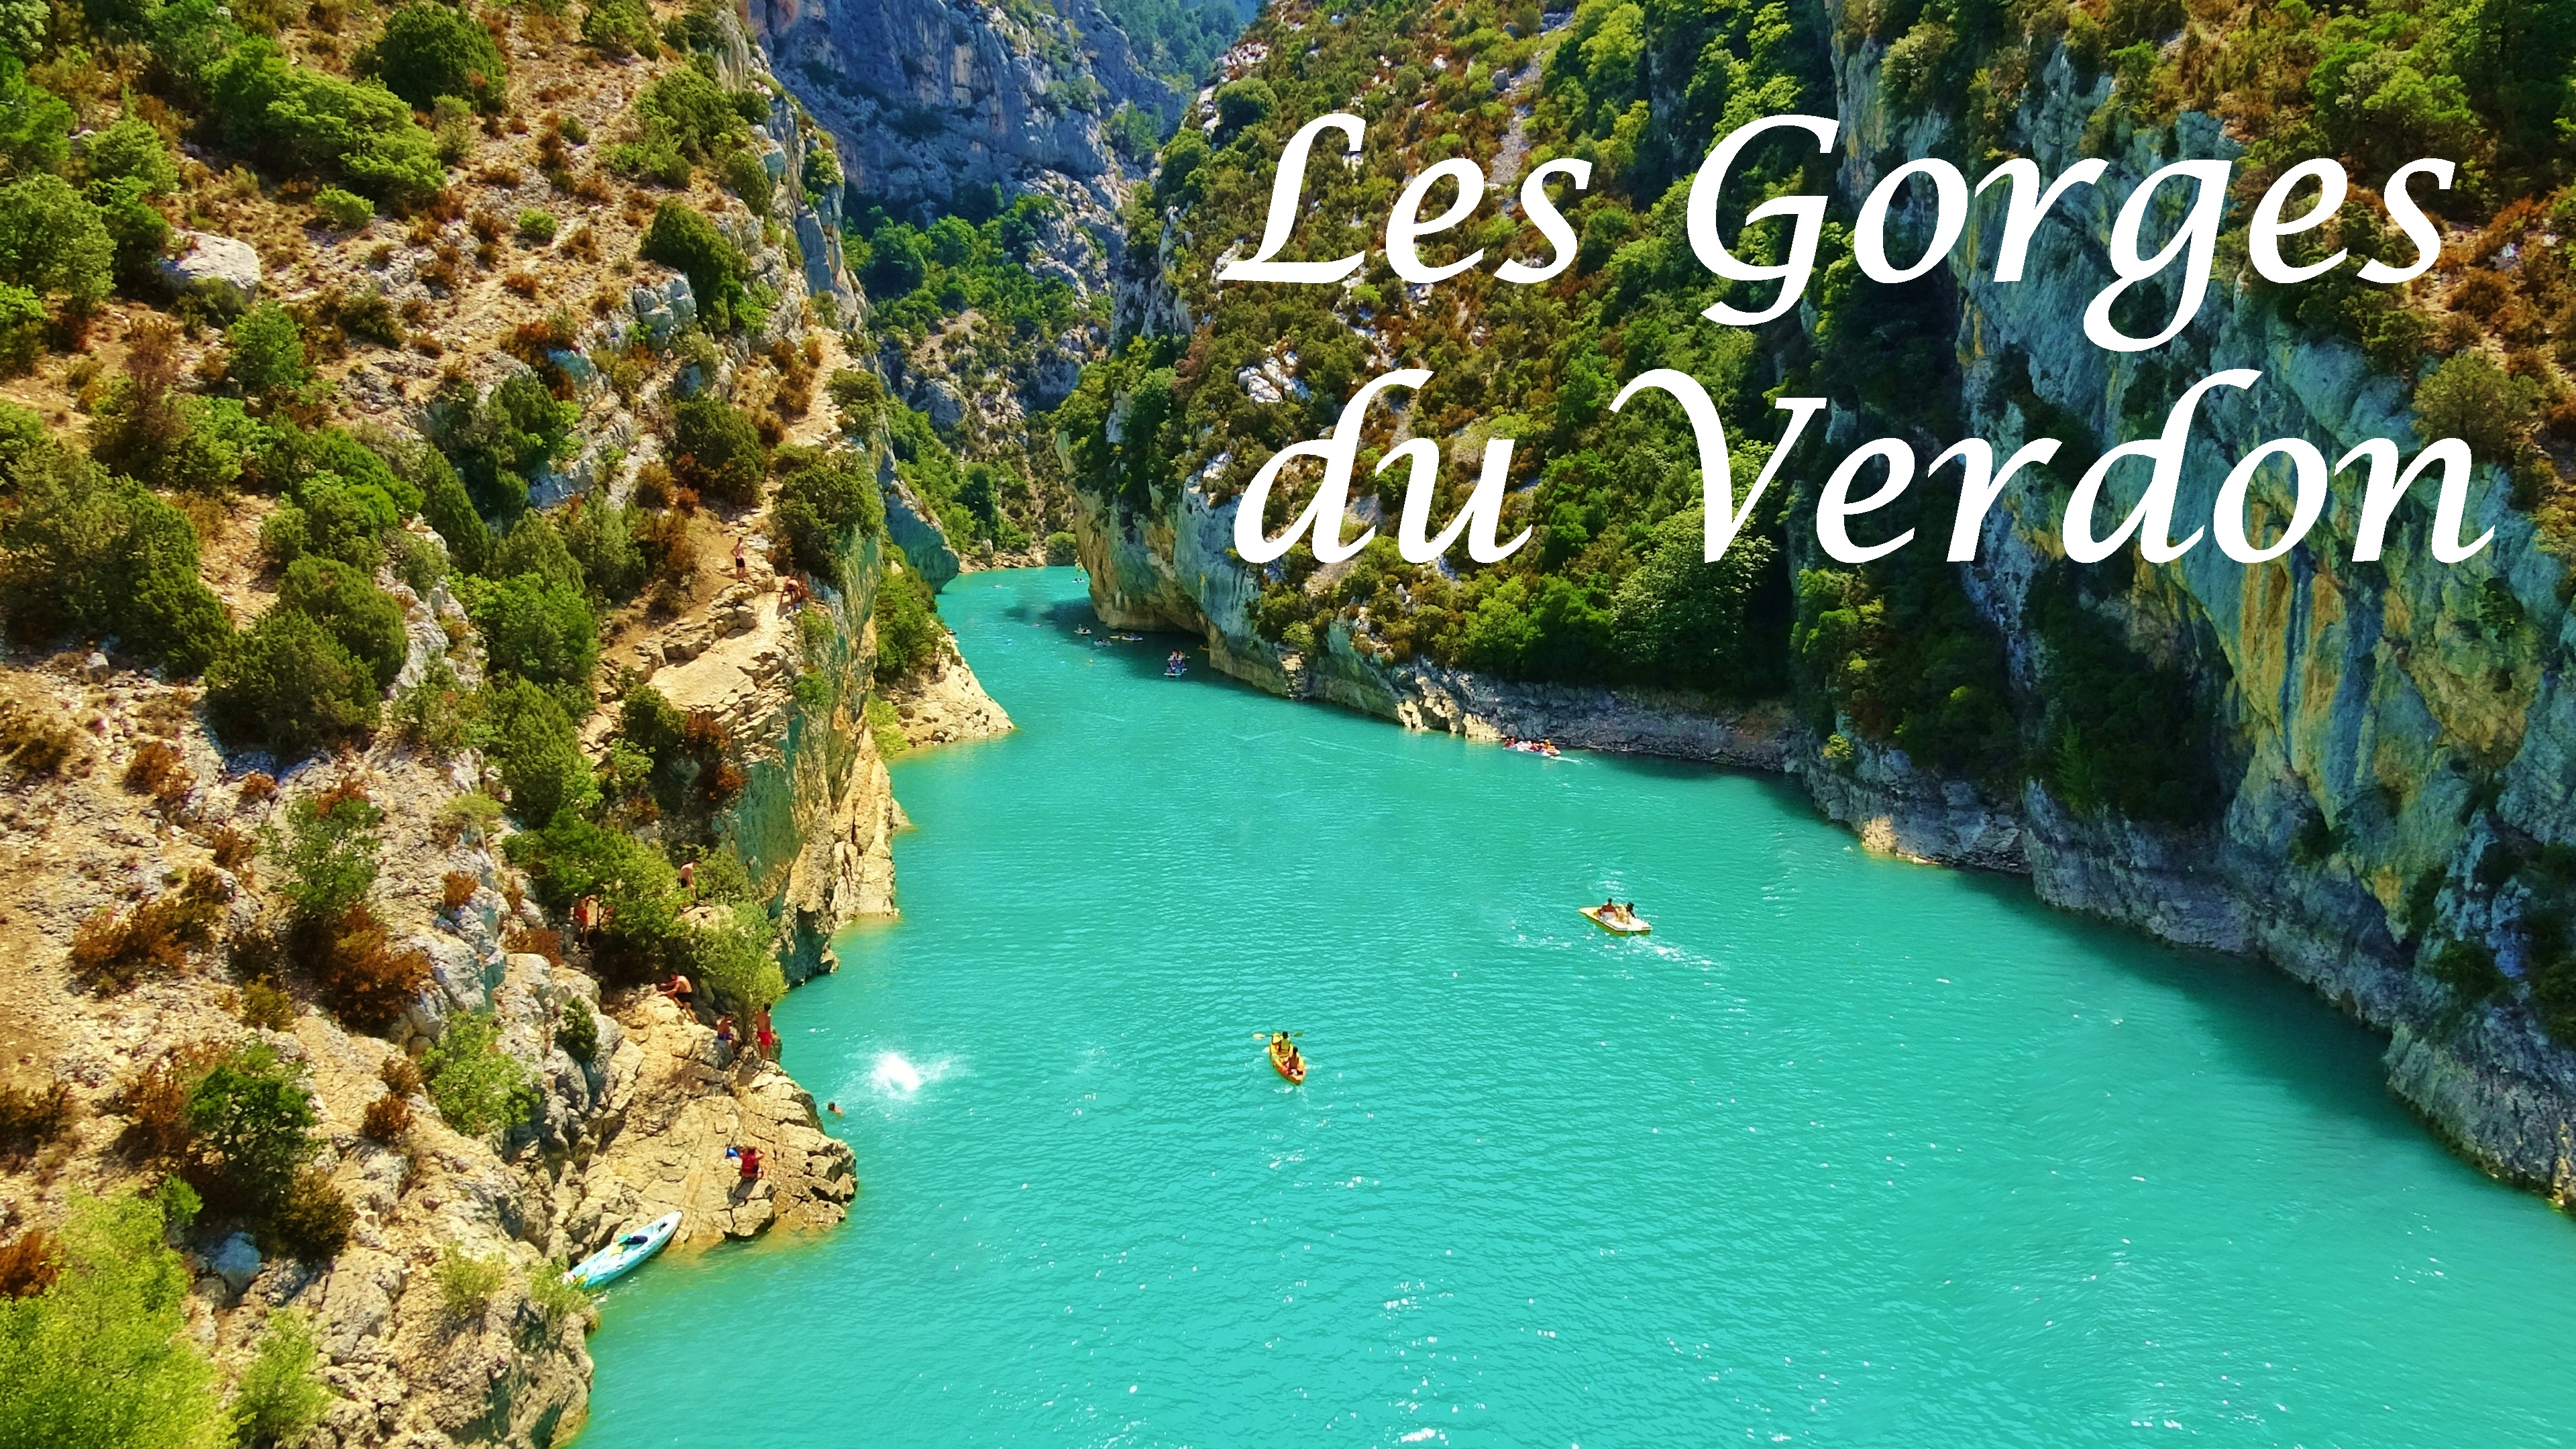 Les gorges du Verdon - Dreams World - Blog voyage